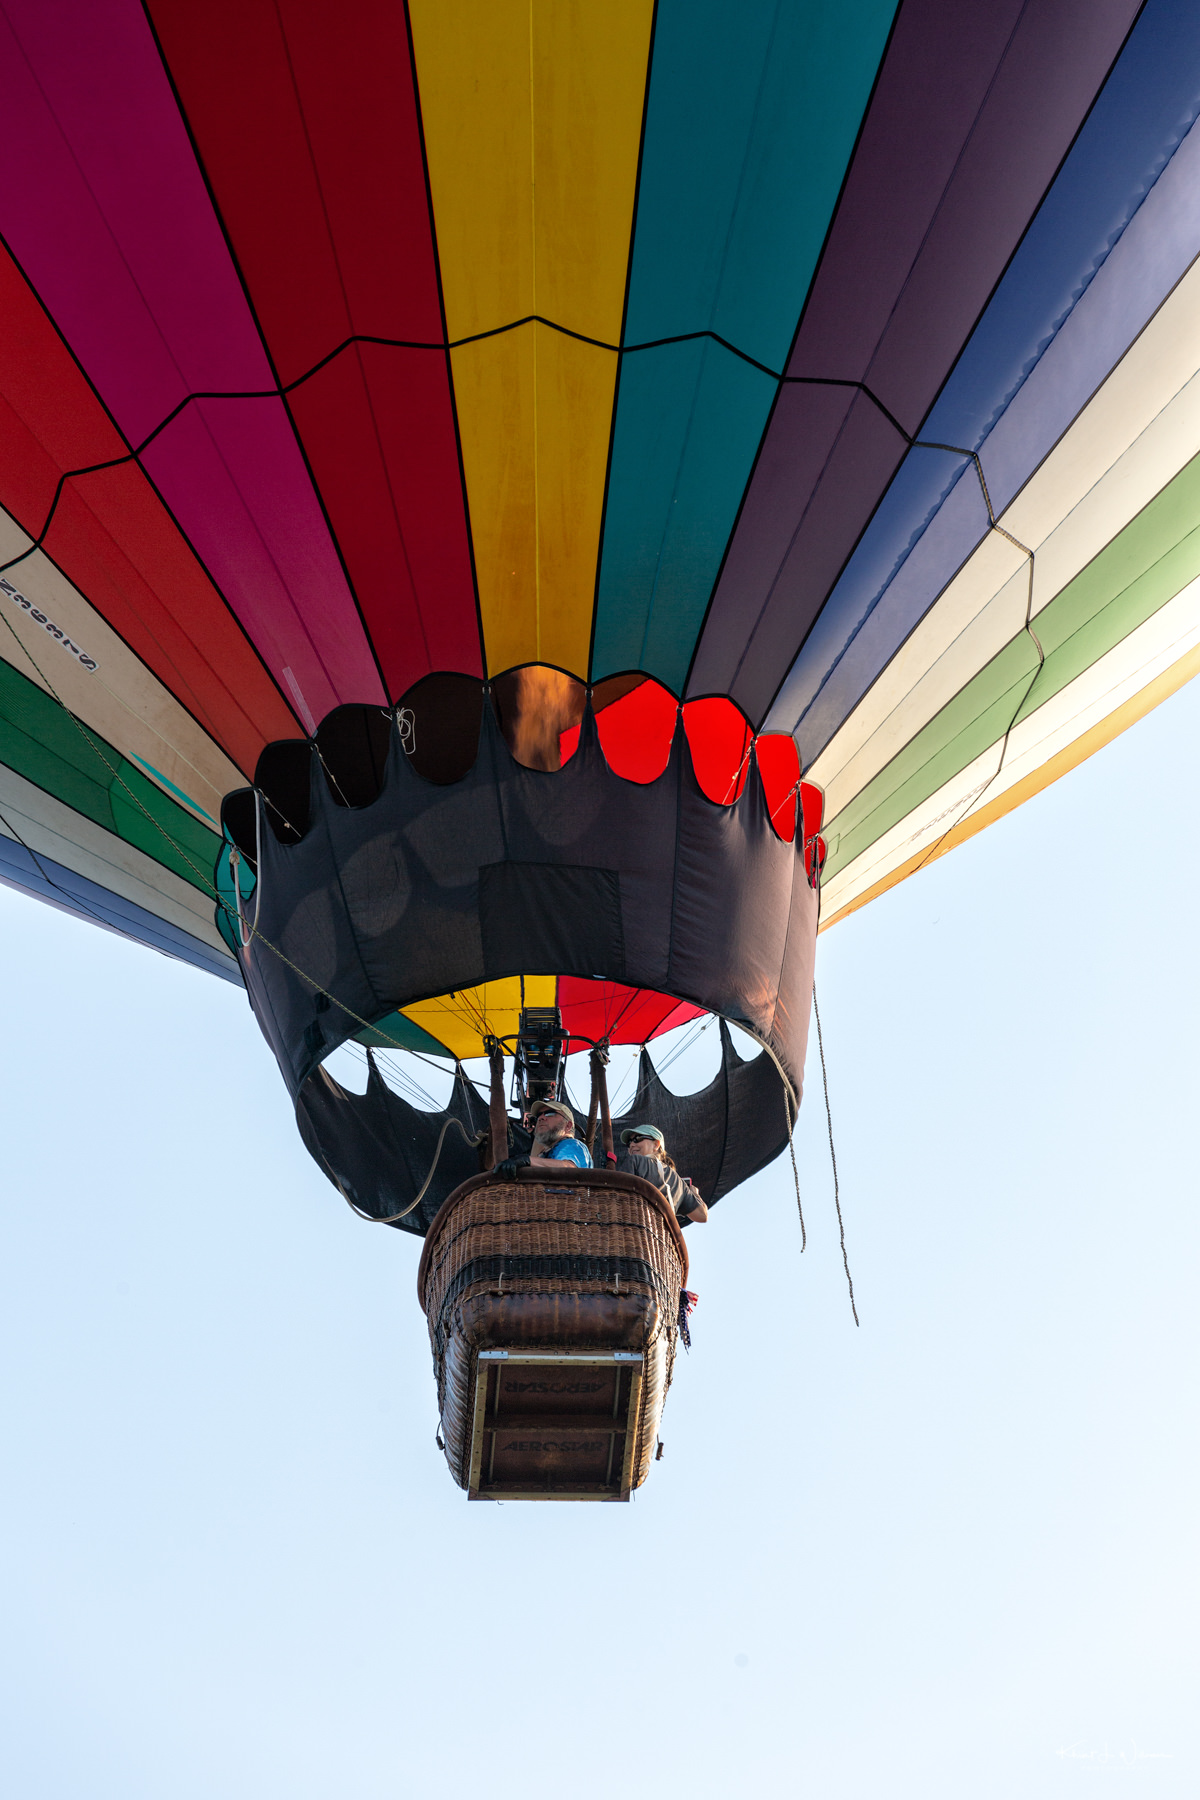 QuickChek Festival of Ballooning pre festival Media Launch QuickChek Festival of Ballooning Media Launch Canon EOS 5D Mark III 20180727 7039 Edit blog